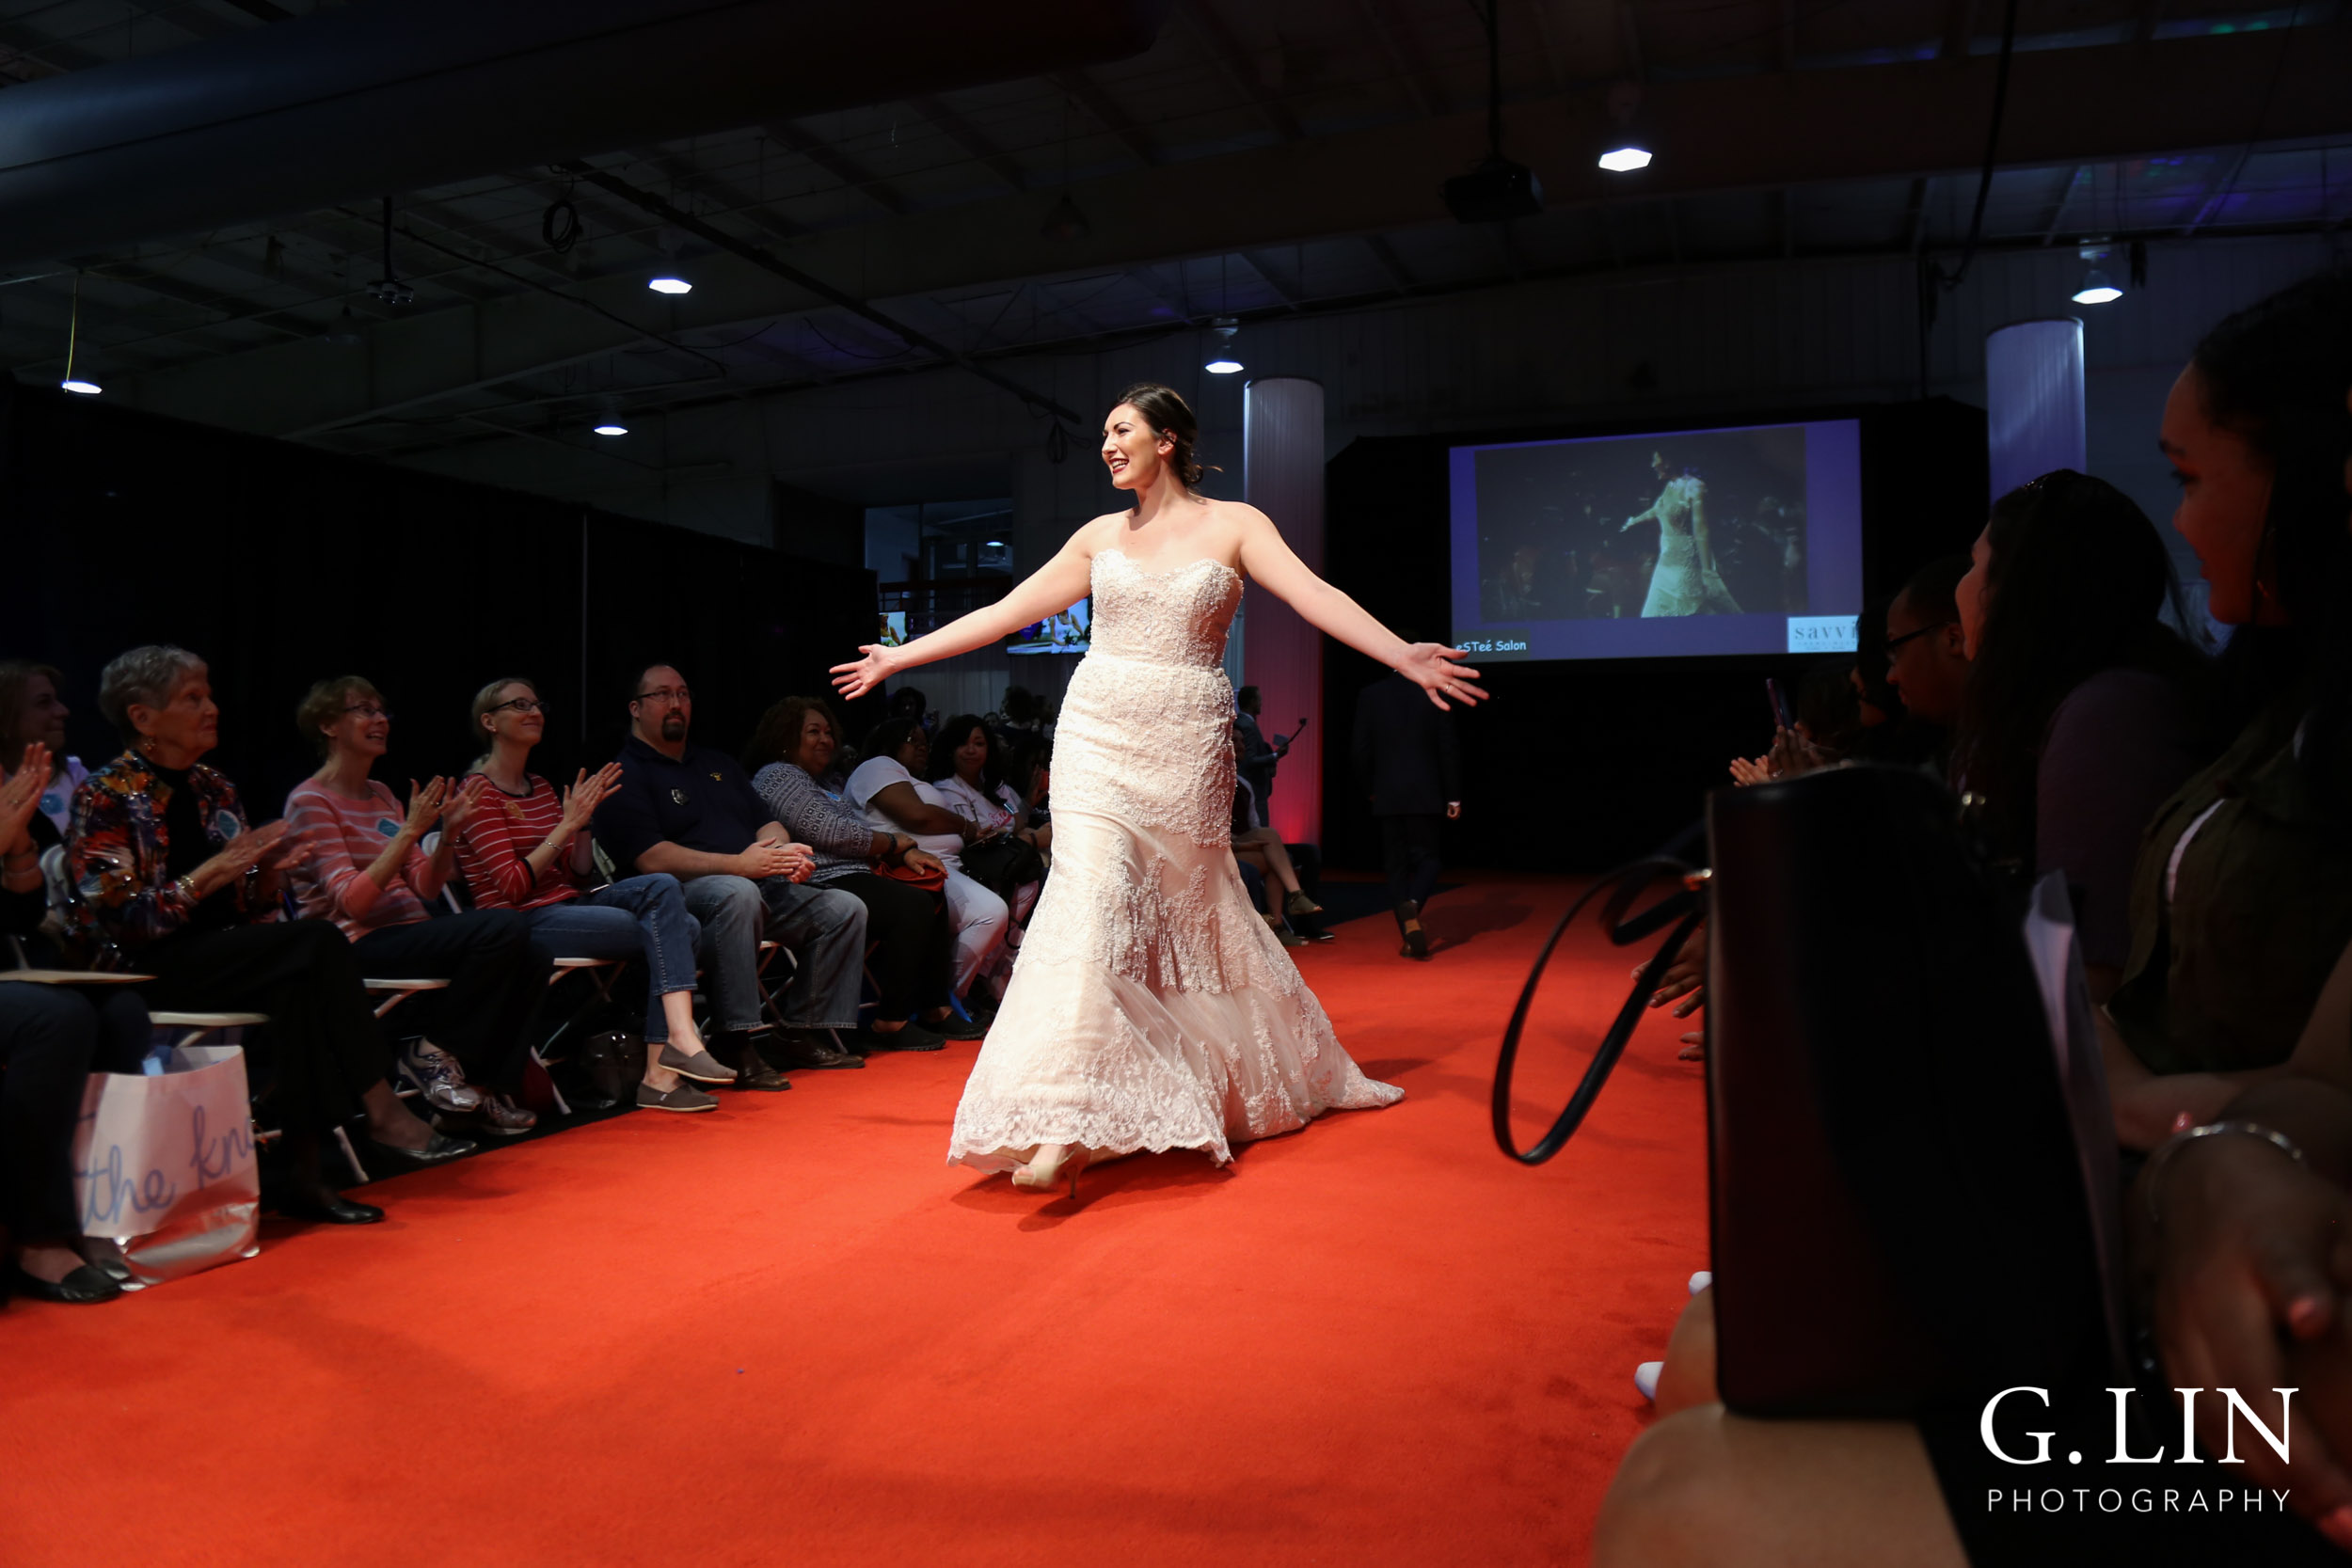 Raleigh Event Photographer | G. Lin Photography | Female model walking down runway wearing strapless bridal gown